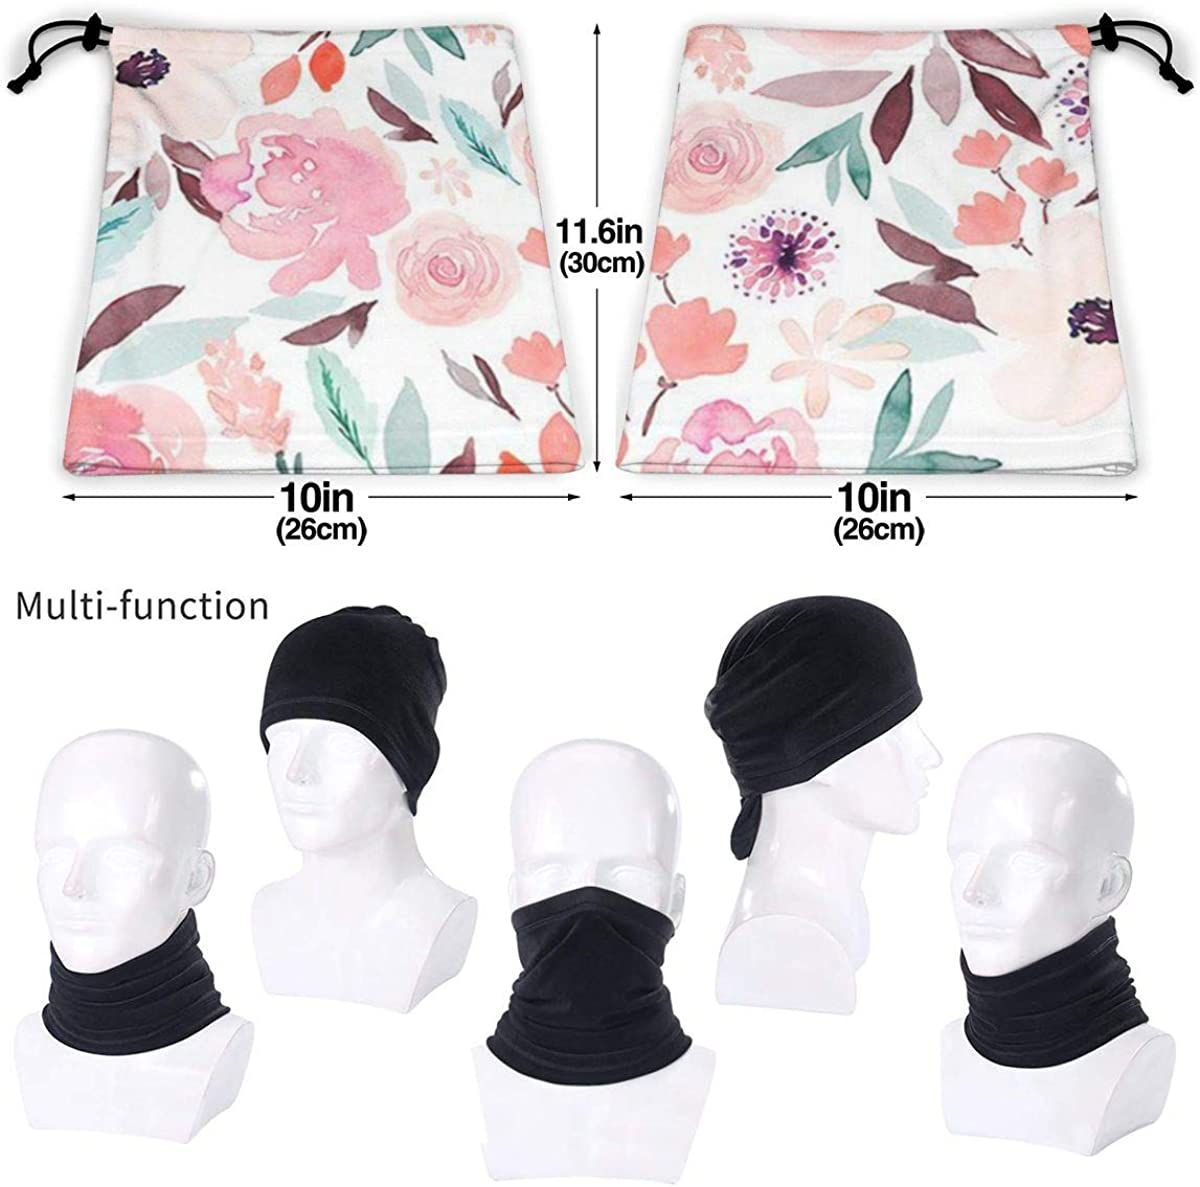 Towilliamsnya Face Scarf Pretty Purple Pastel Floral Wallpaper Headband Scarf Balaclava